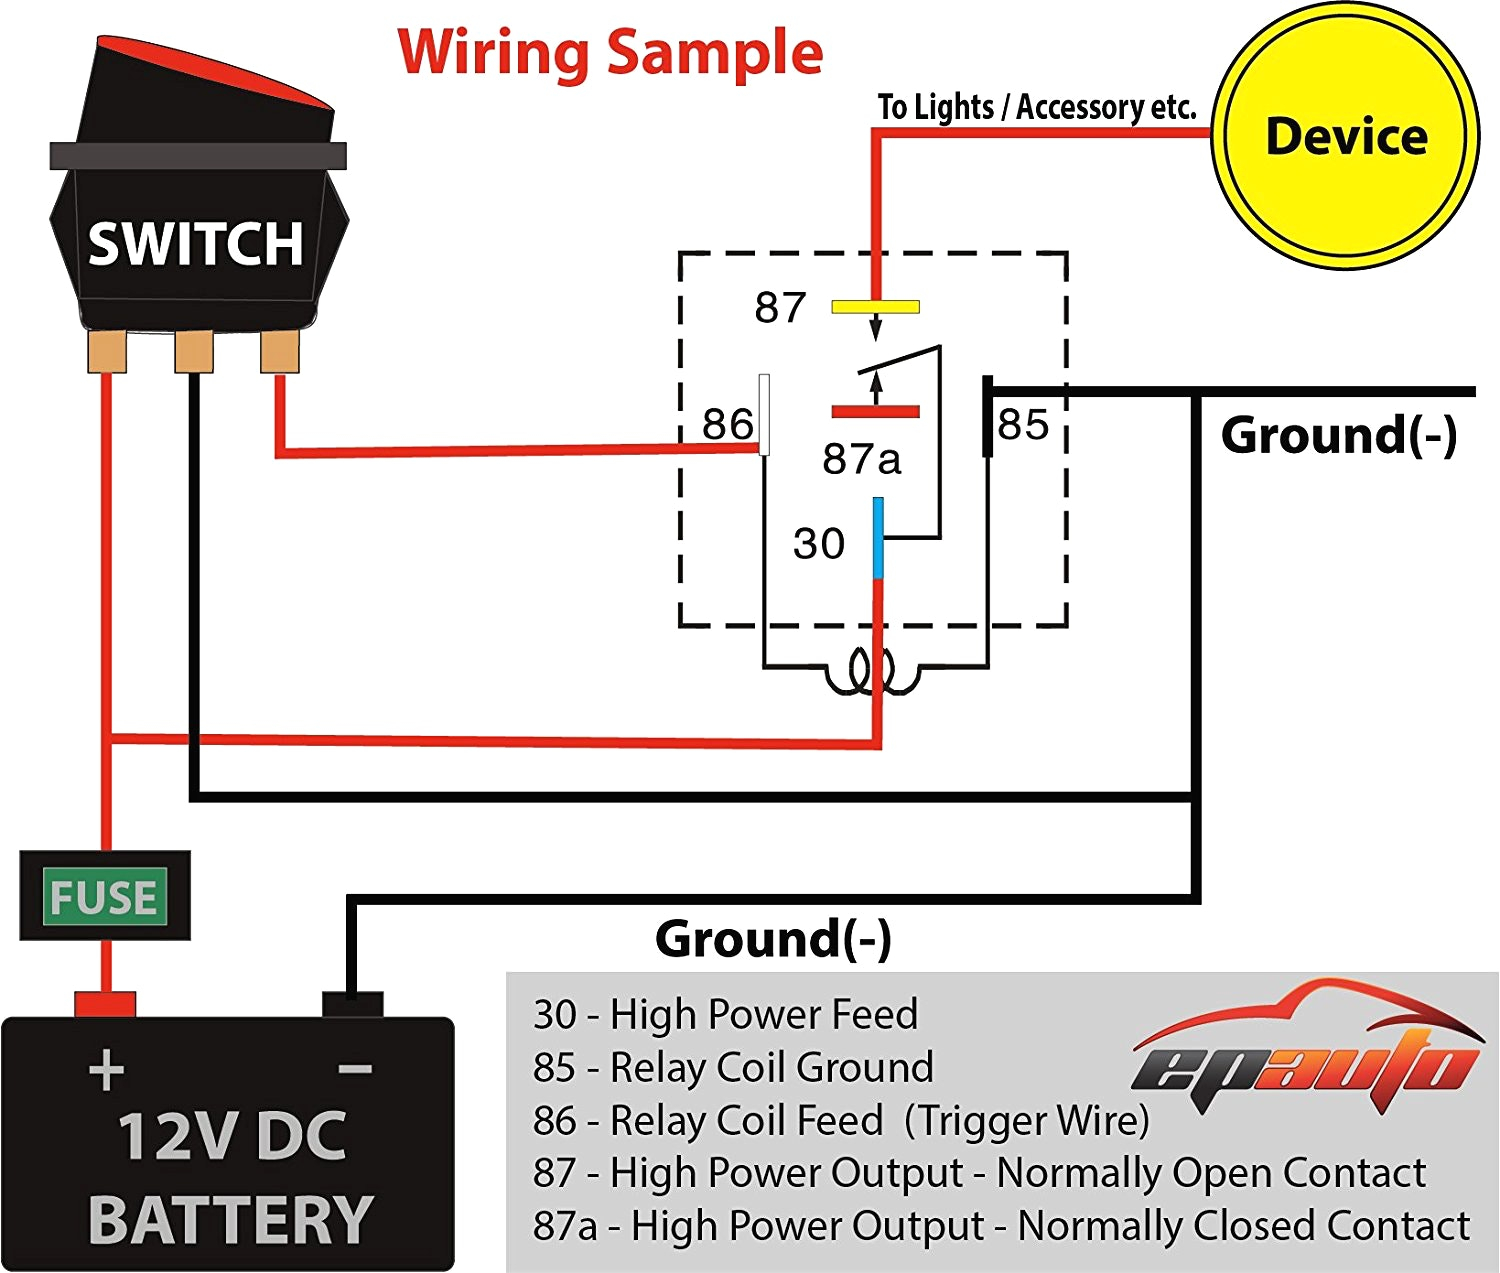 DIAGRAM] 208 Volt Wiring Diagram FULL Version HD Quality Wiring Diagram -  EARDIAGRAMS.ERACLEATURISMO.ITDiagram Database